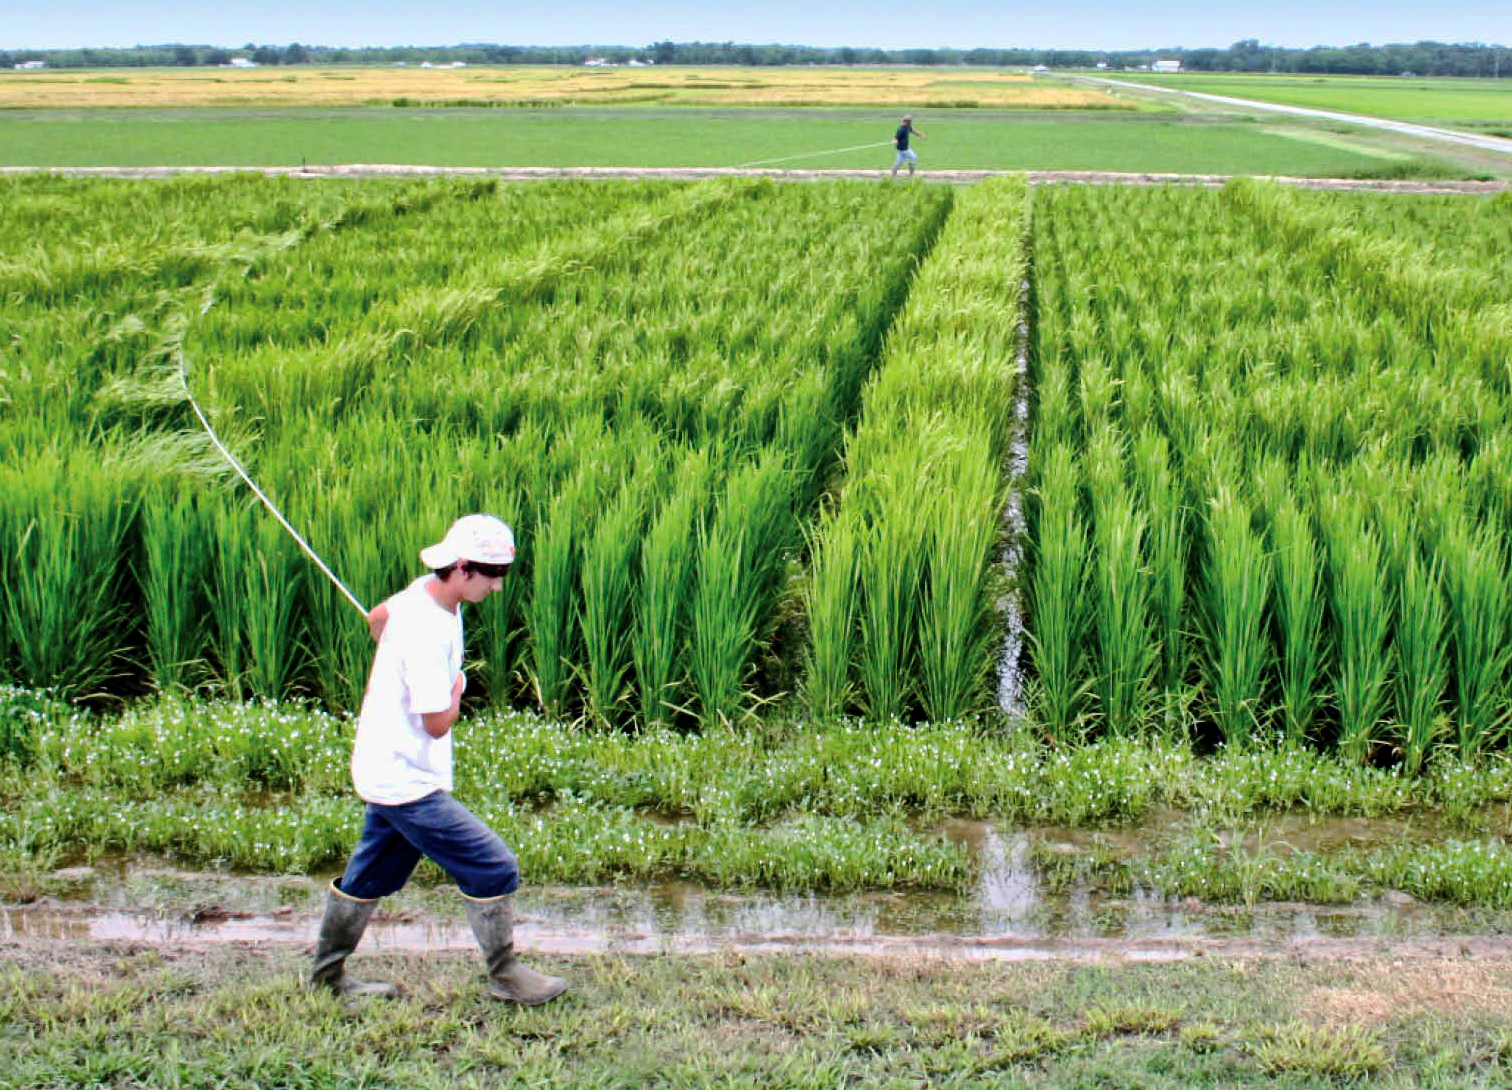 Progress made toward hybrid rice, but its still years away